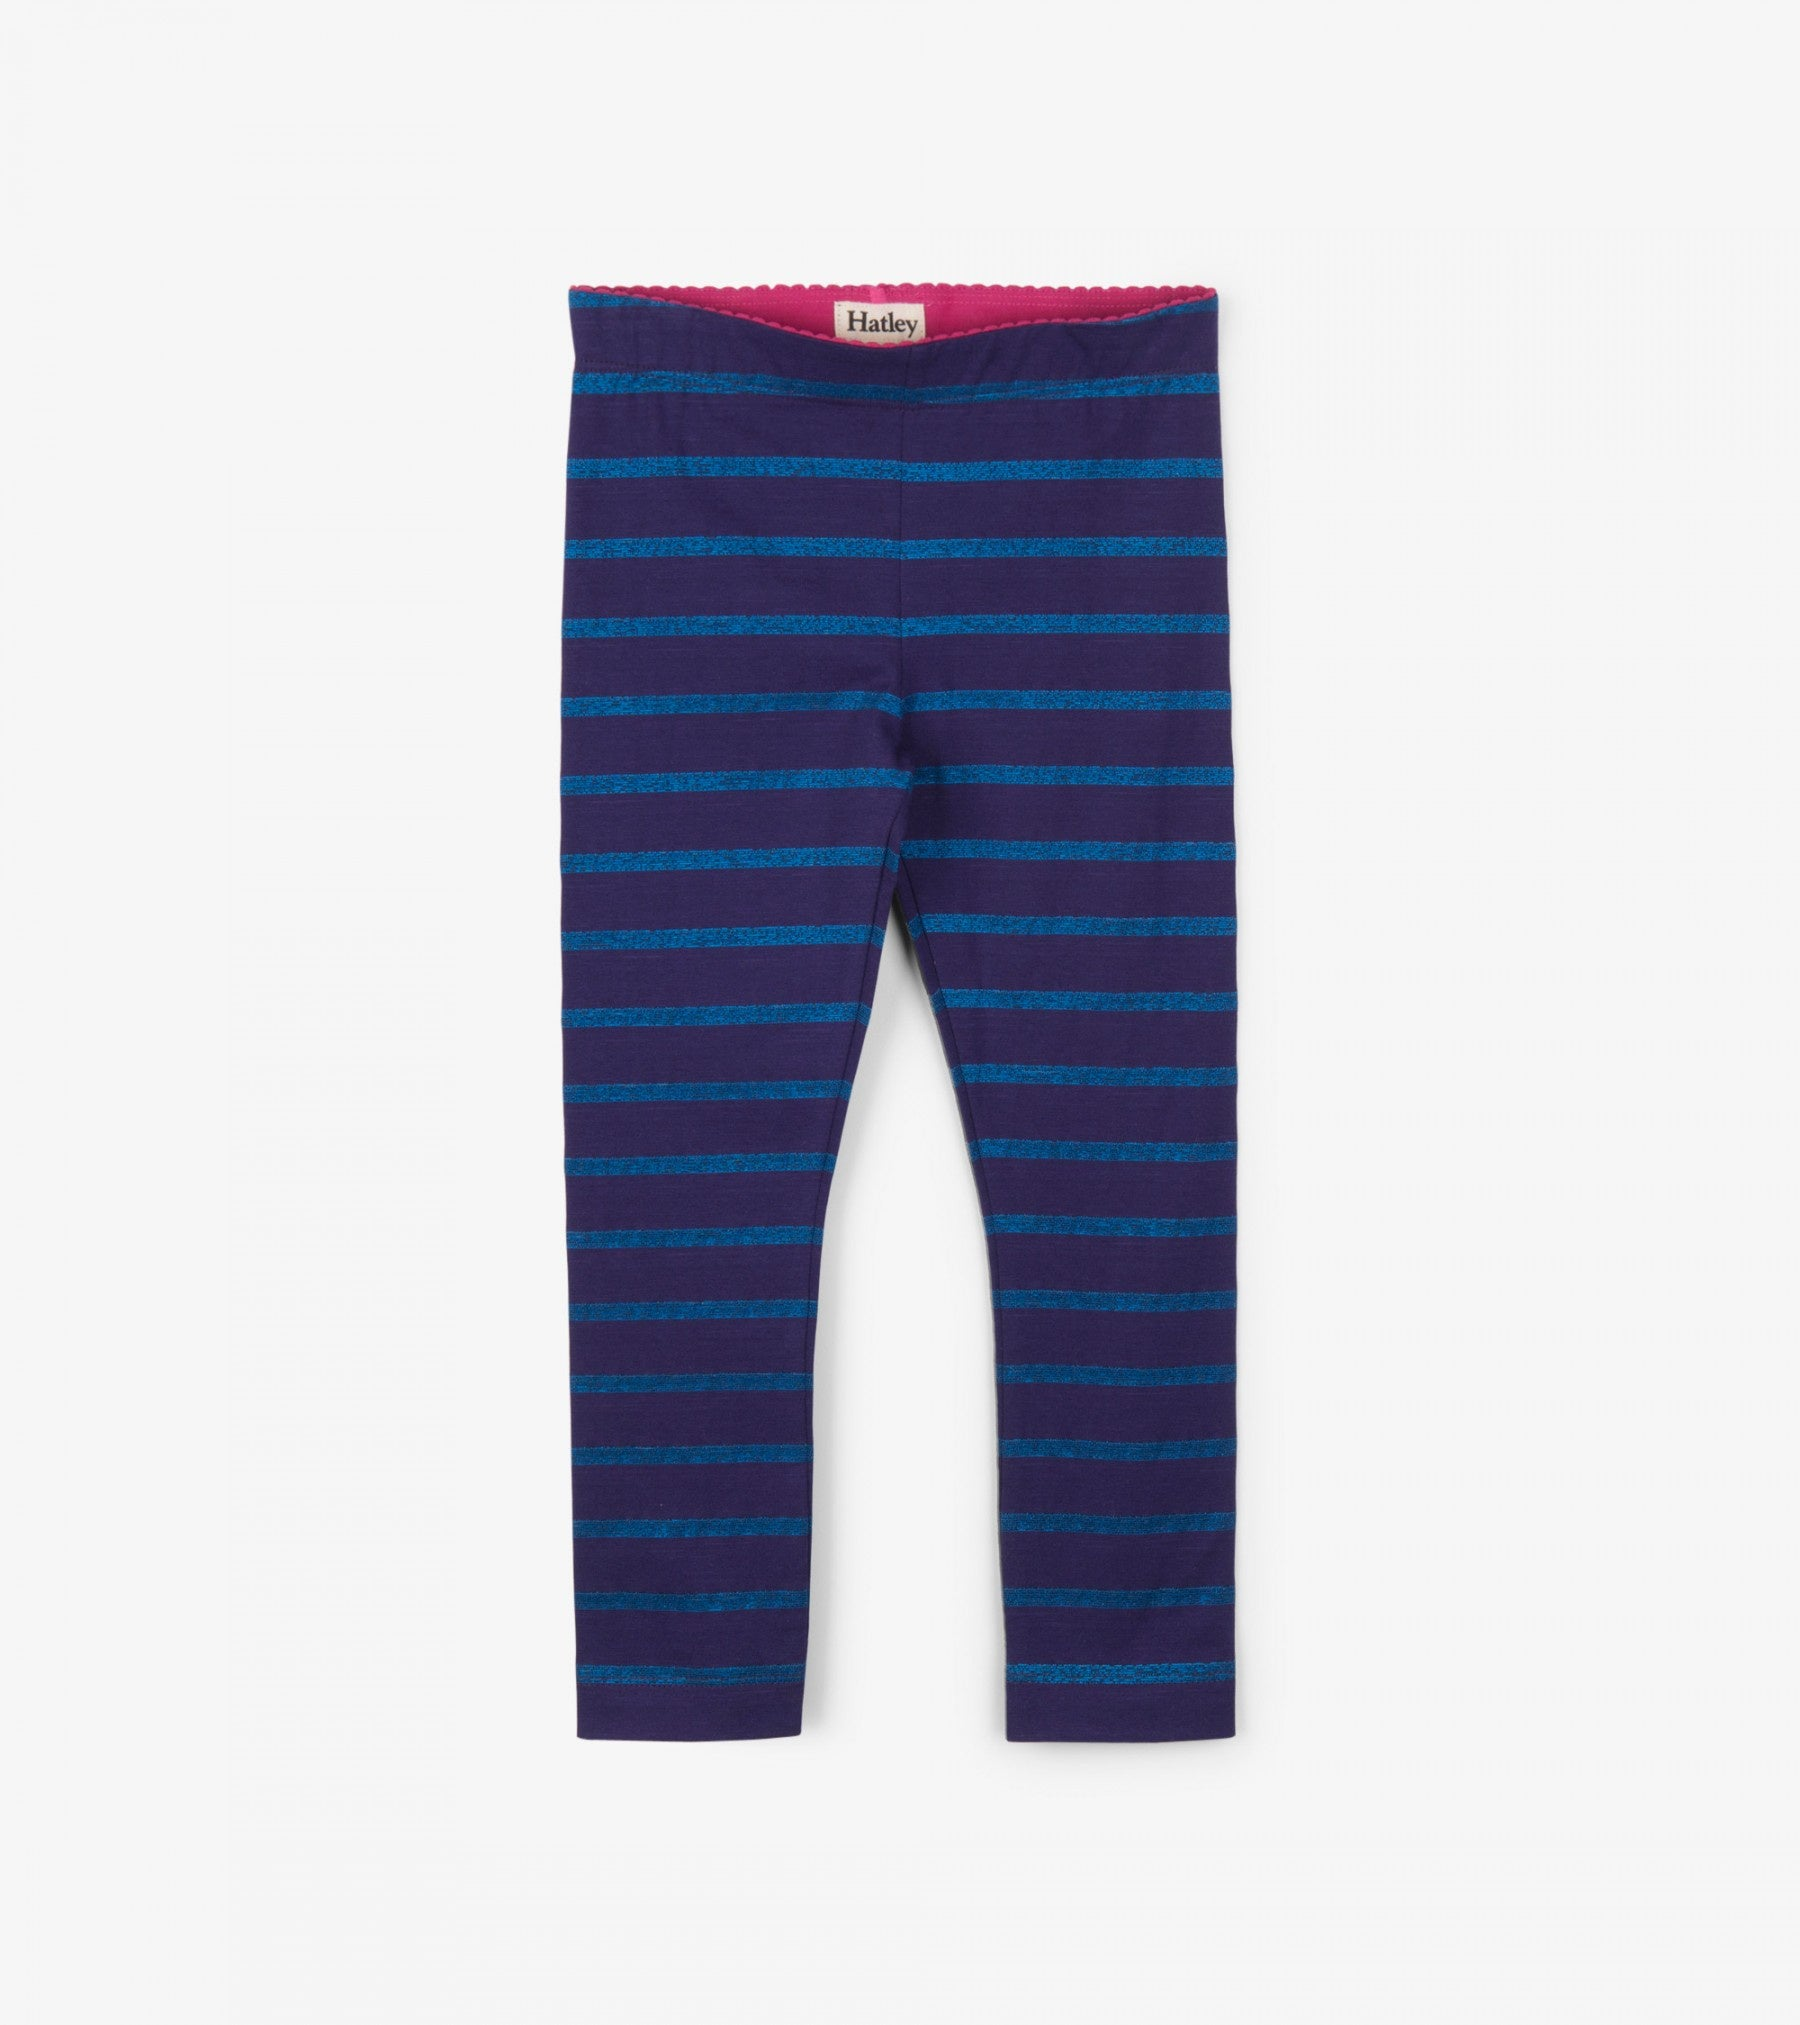 Glitter Striped Leggings by Hatley - Little Marshans